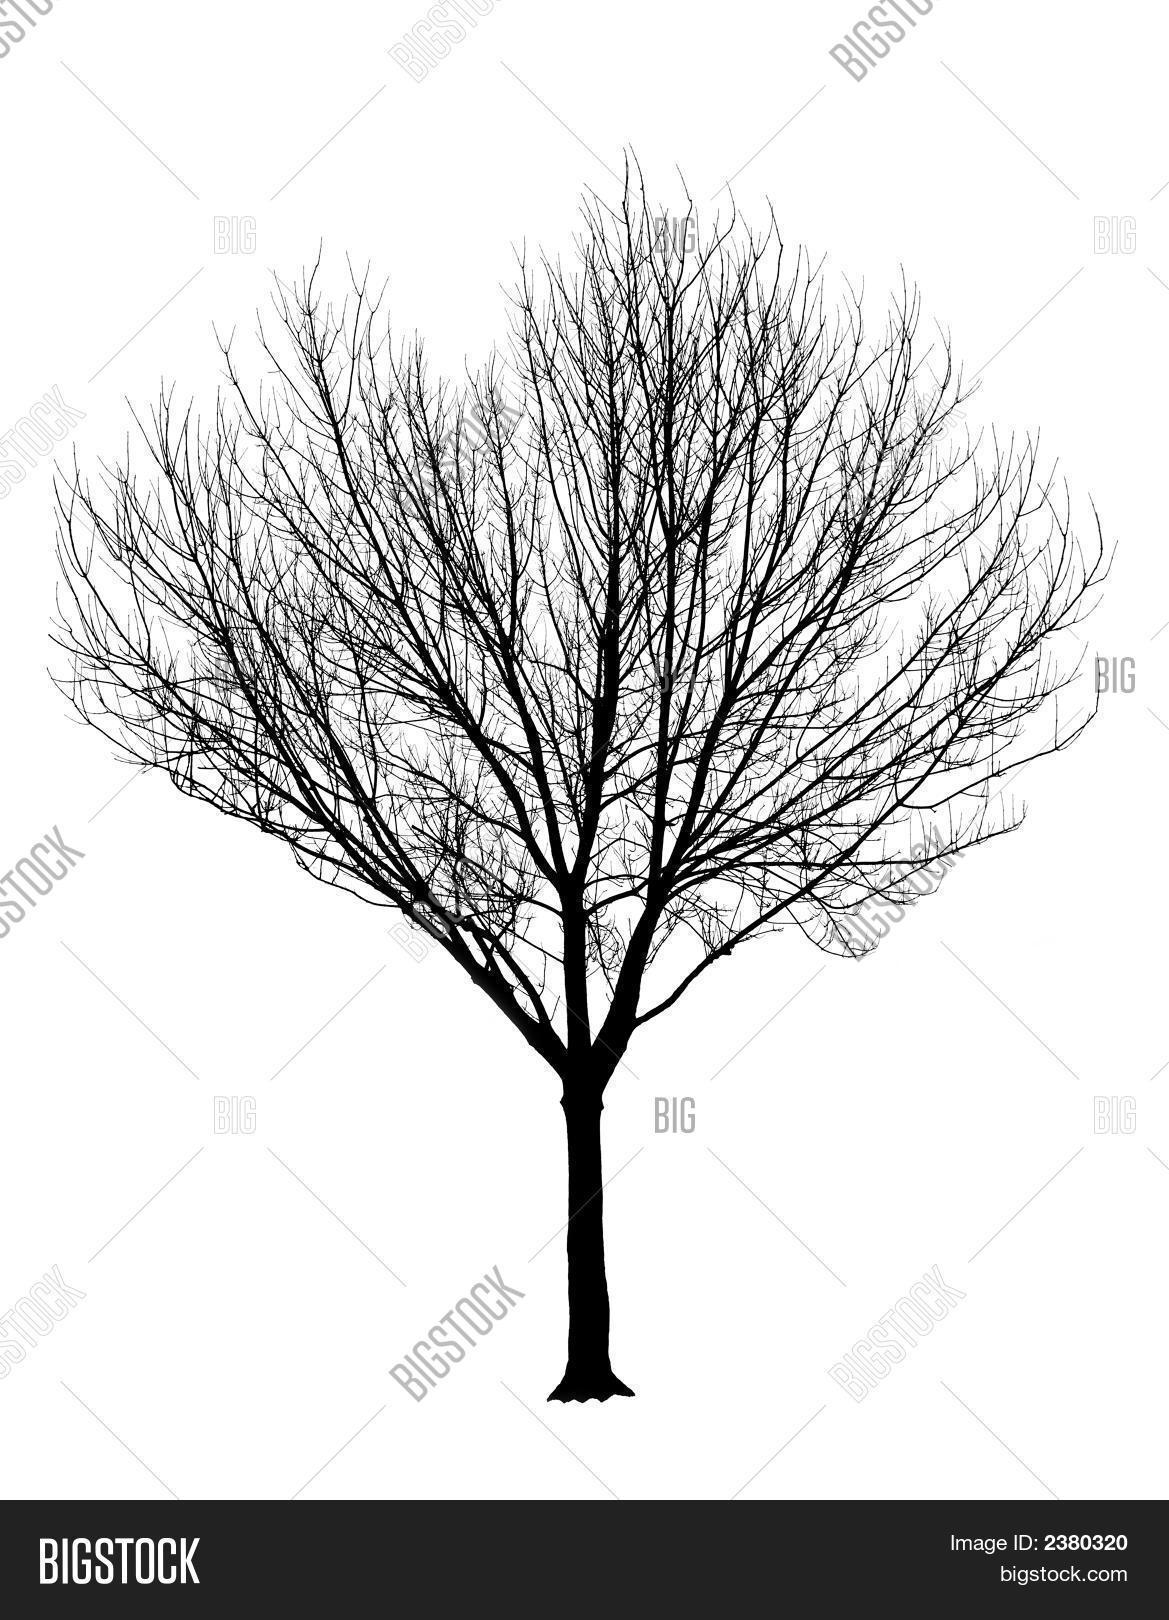 Bare Tree Silhouette Isolation Image Amp Photo